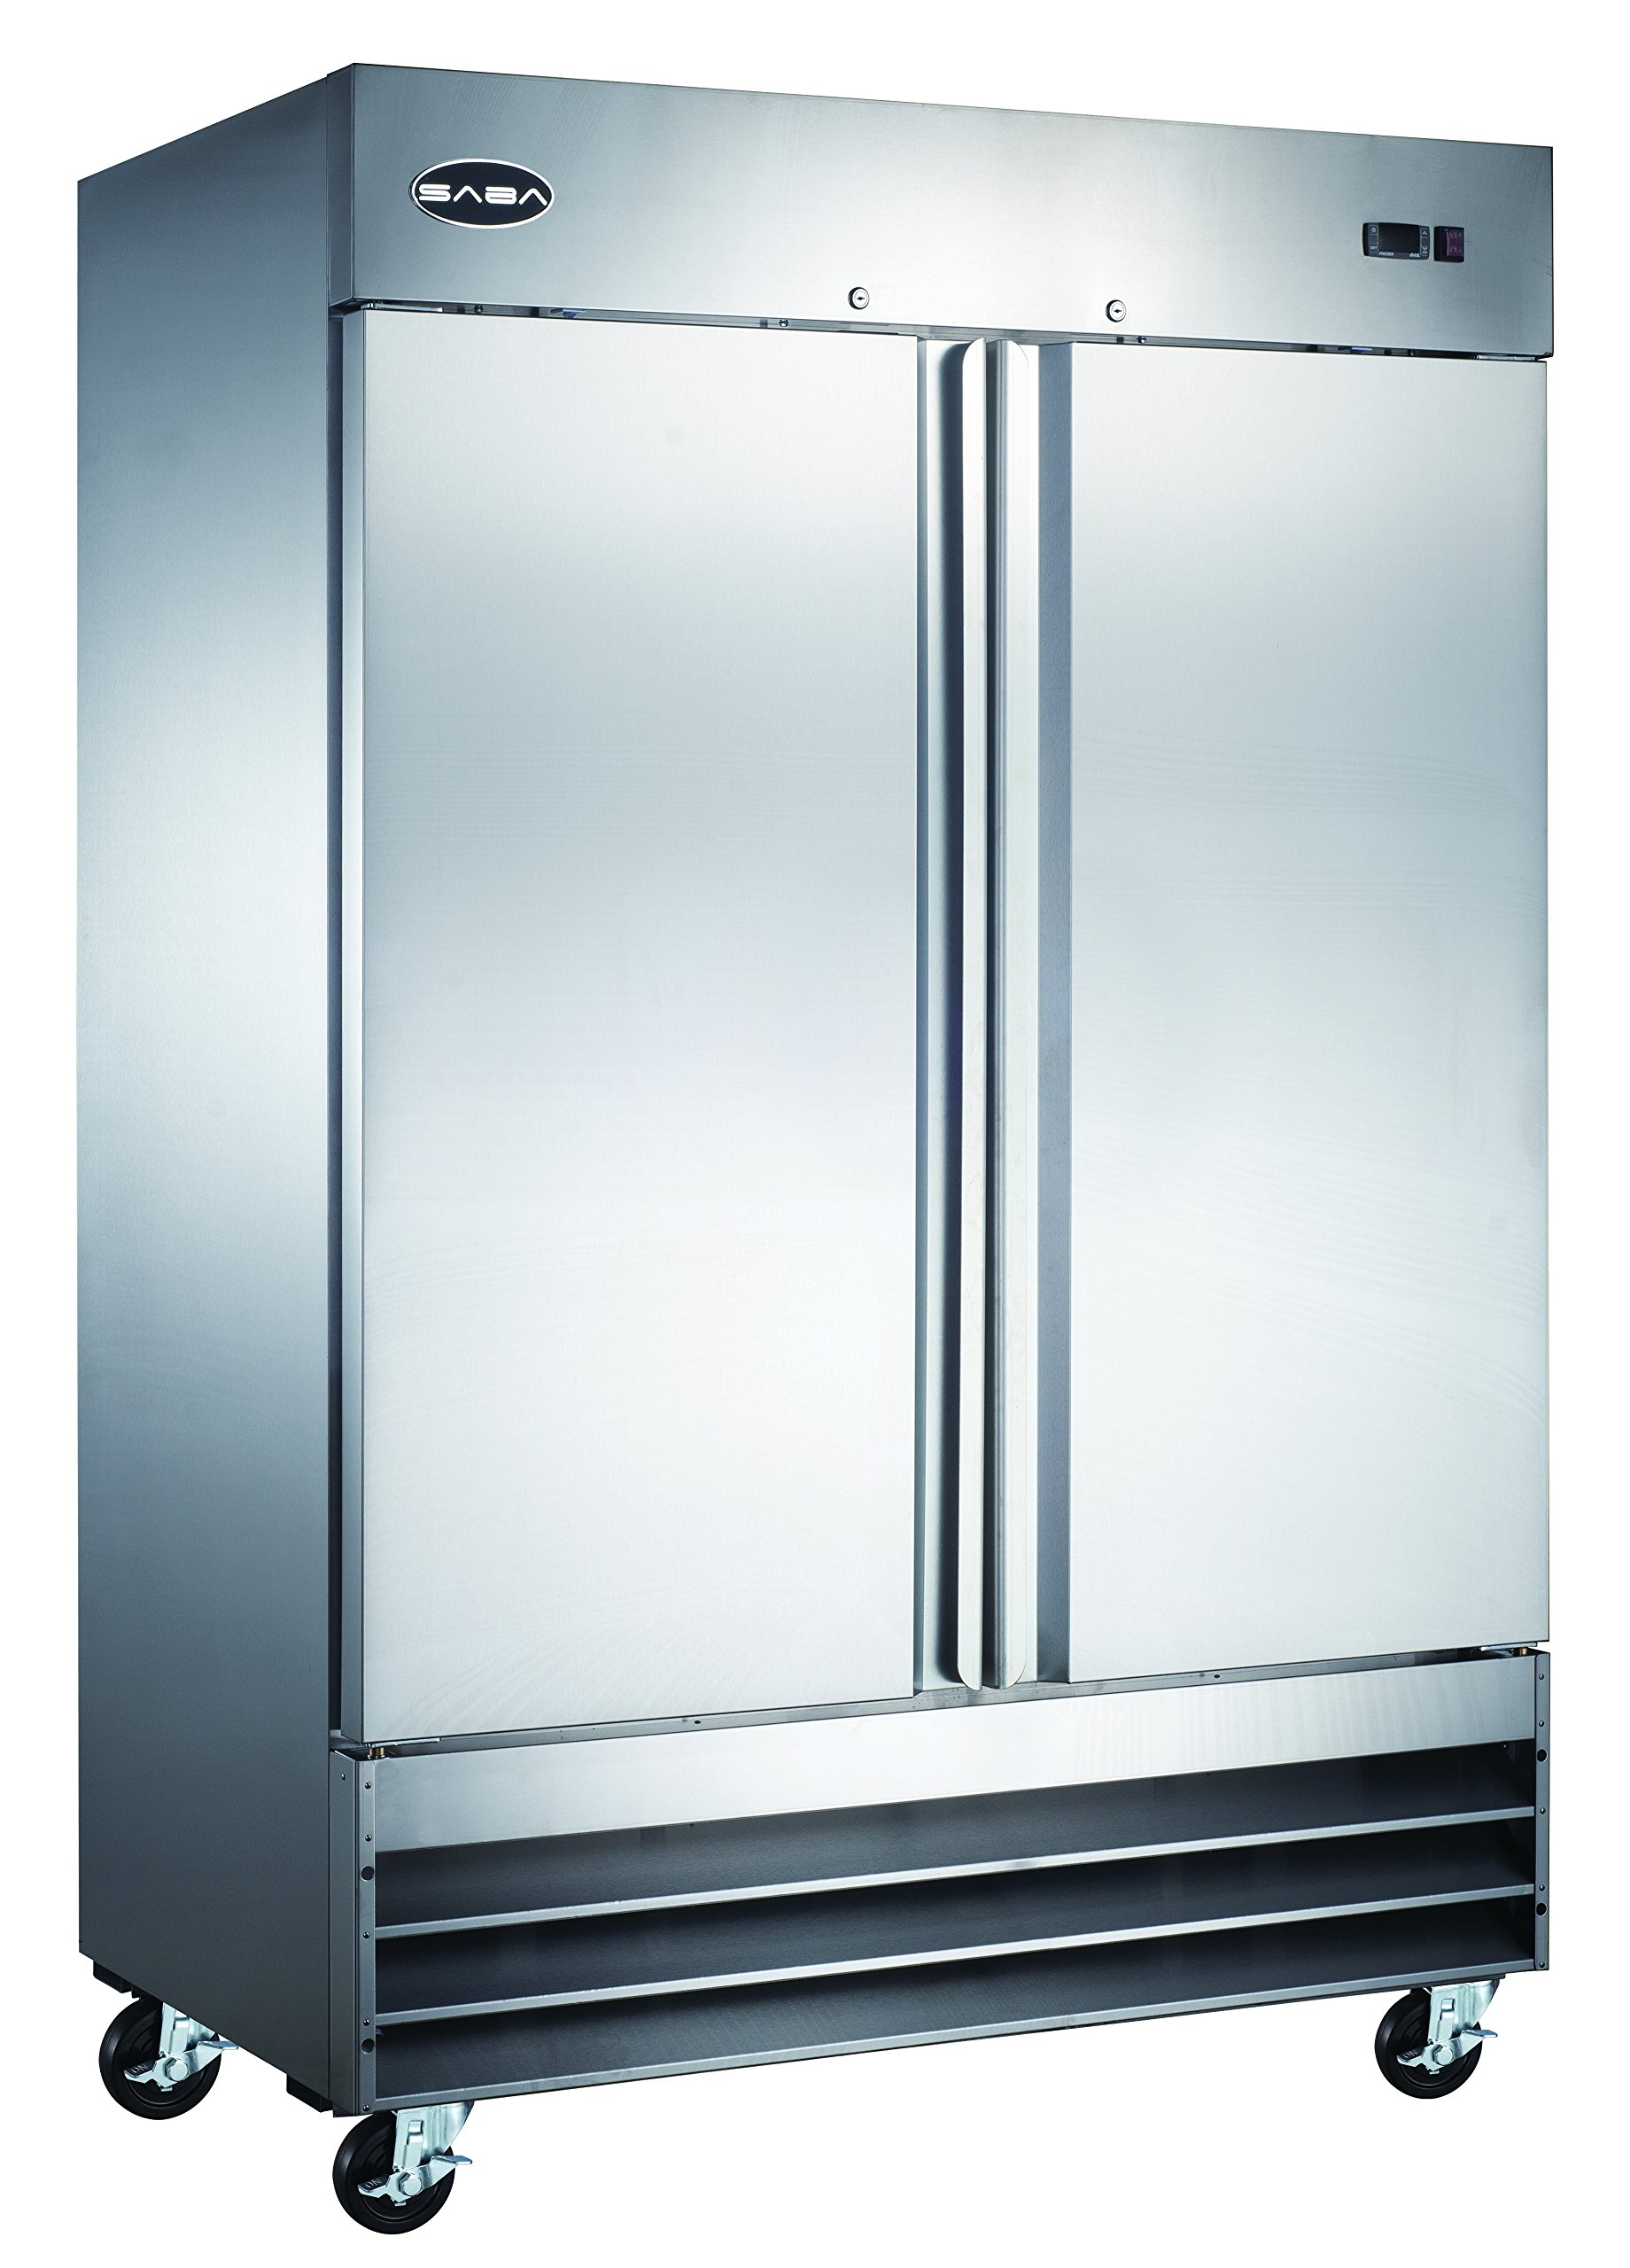 SABA Air CFD-2RR Heavy Duty 54'' Two Section Solid Door Stainless Steel Reach in Commercial Refrigerator--Capacity: 46.5 Cu. Ft.